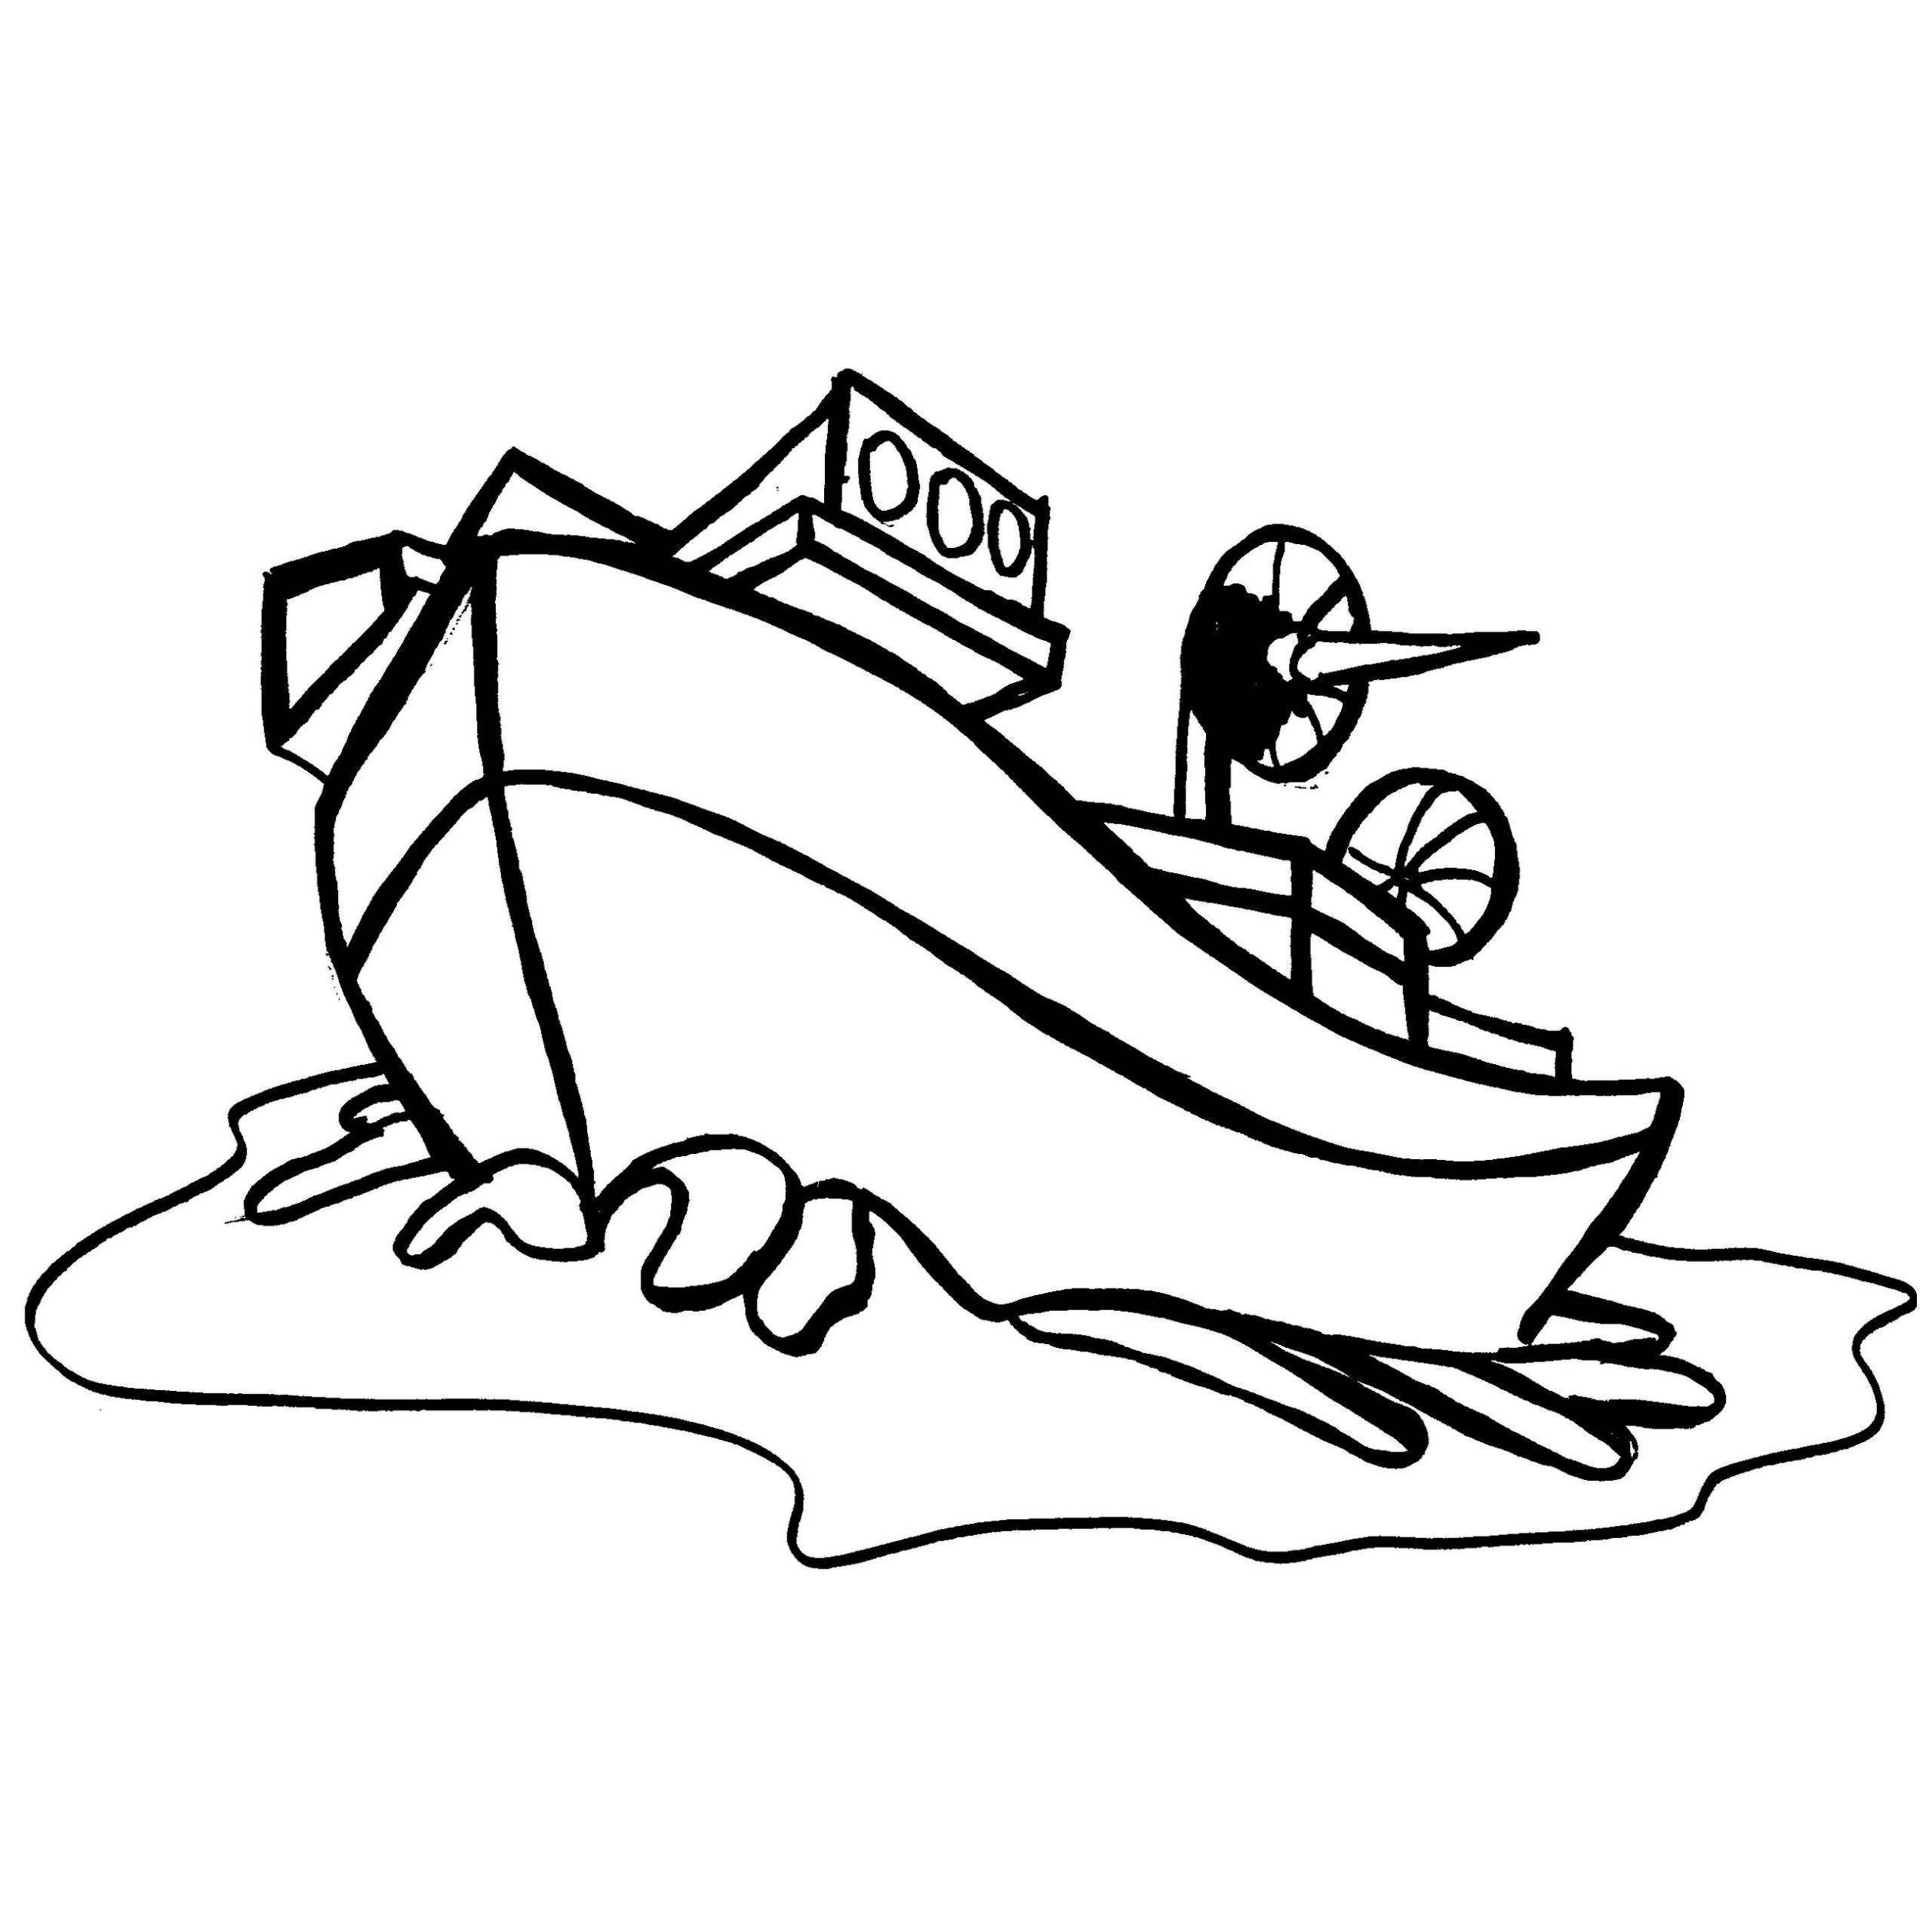 2560x2560 Free Printable Navy Ship Coloring Pages For Boys